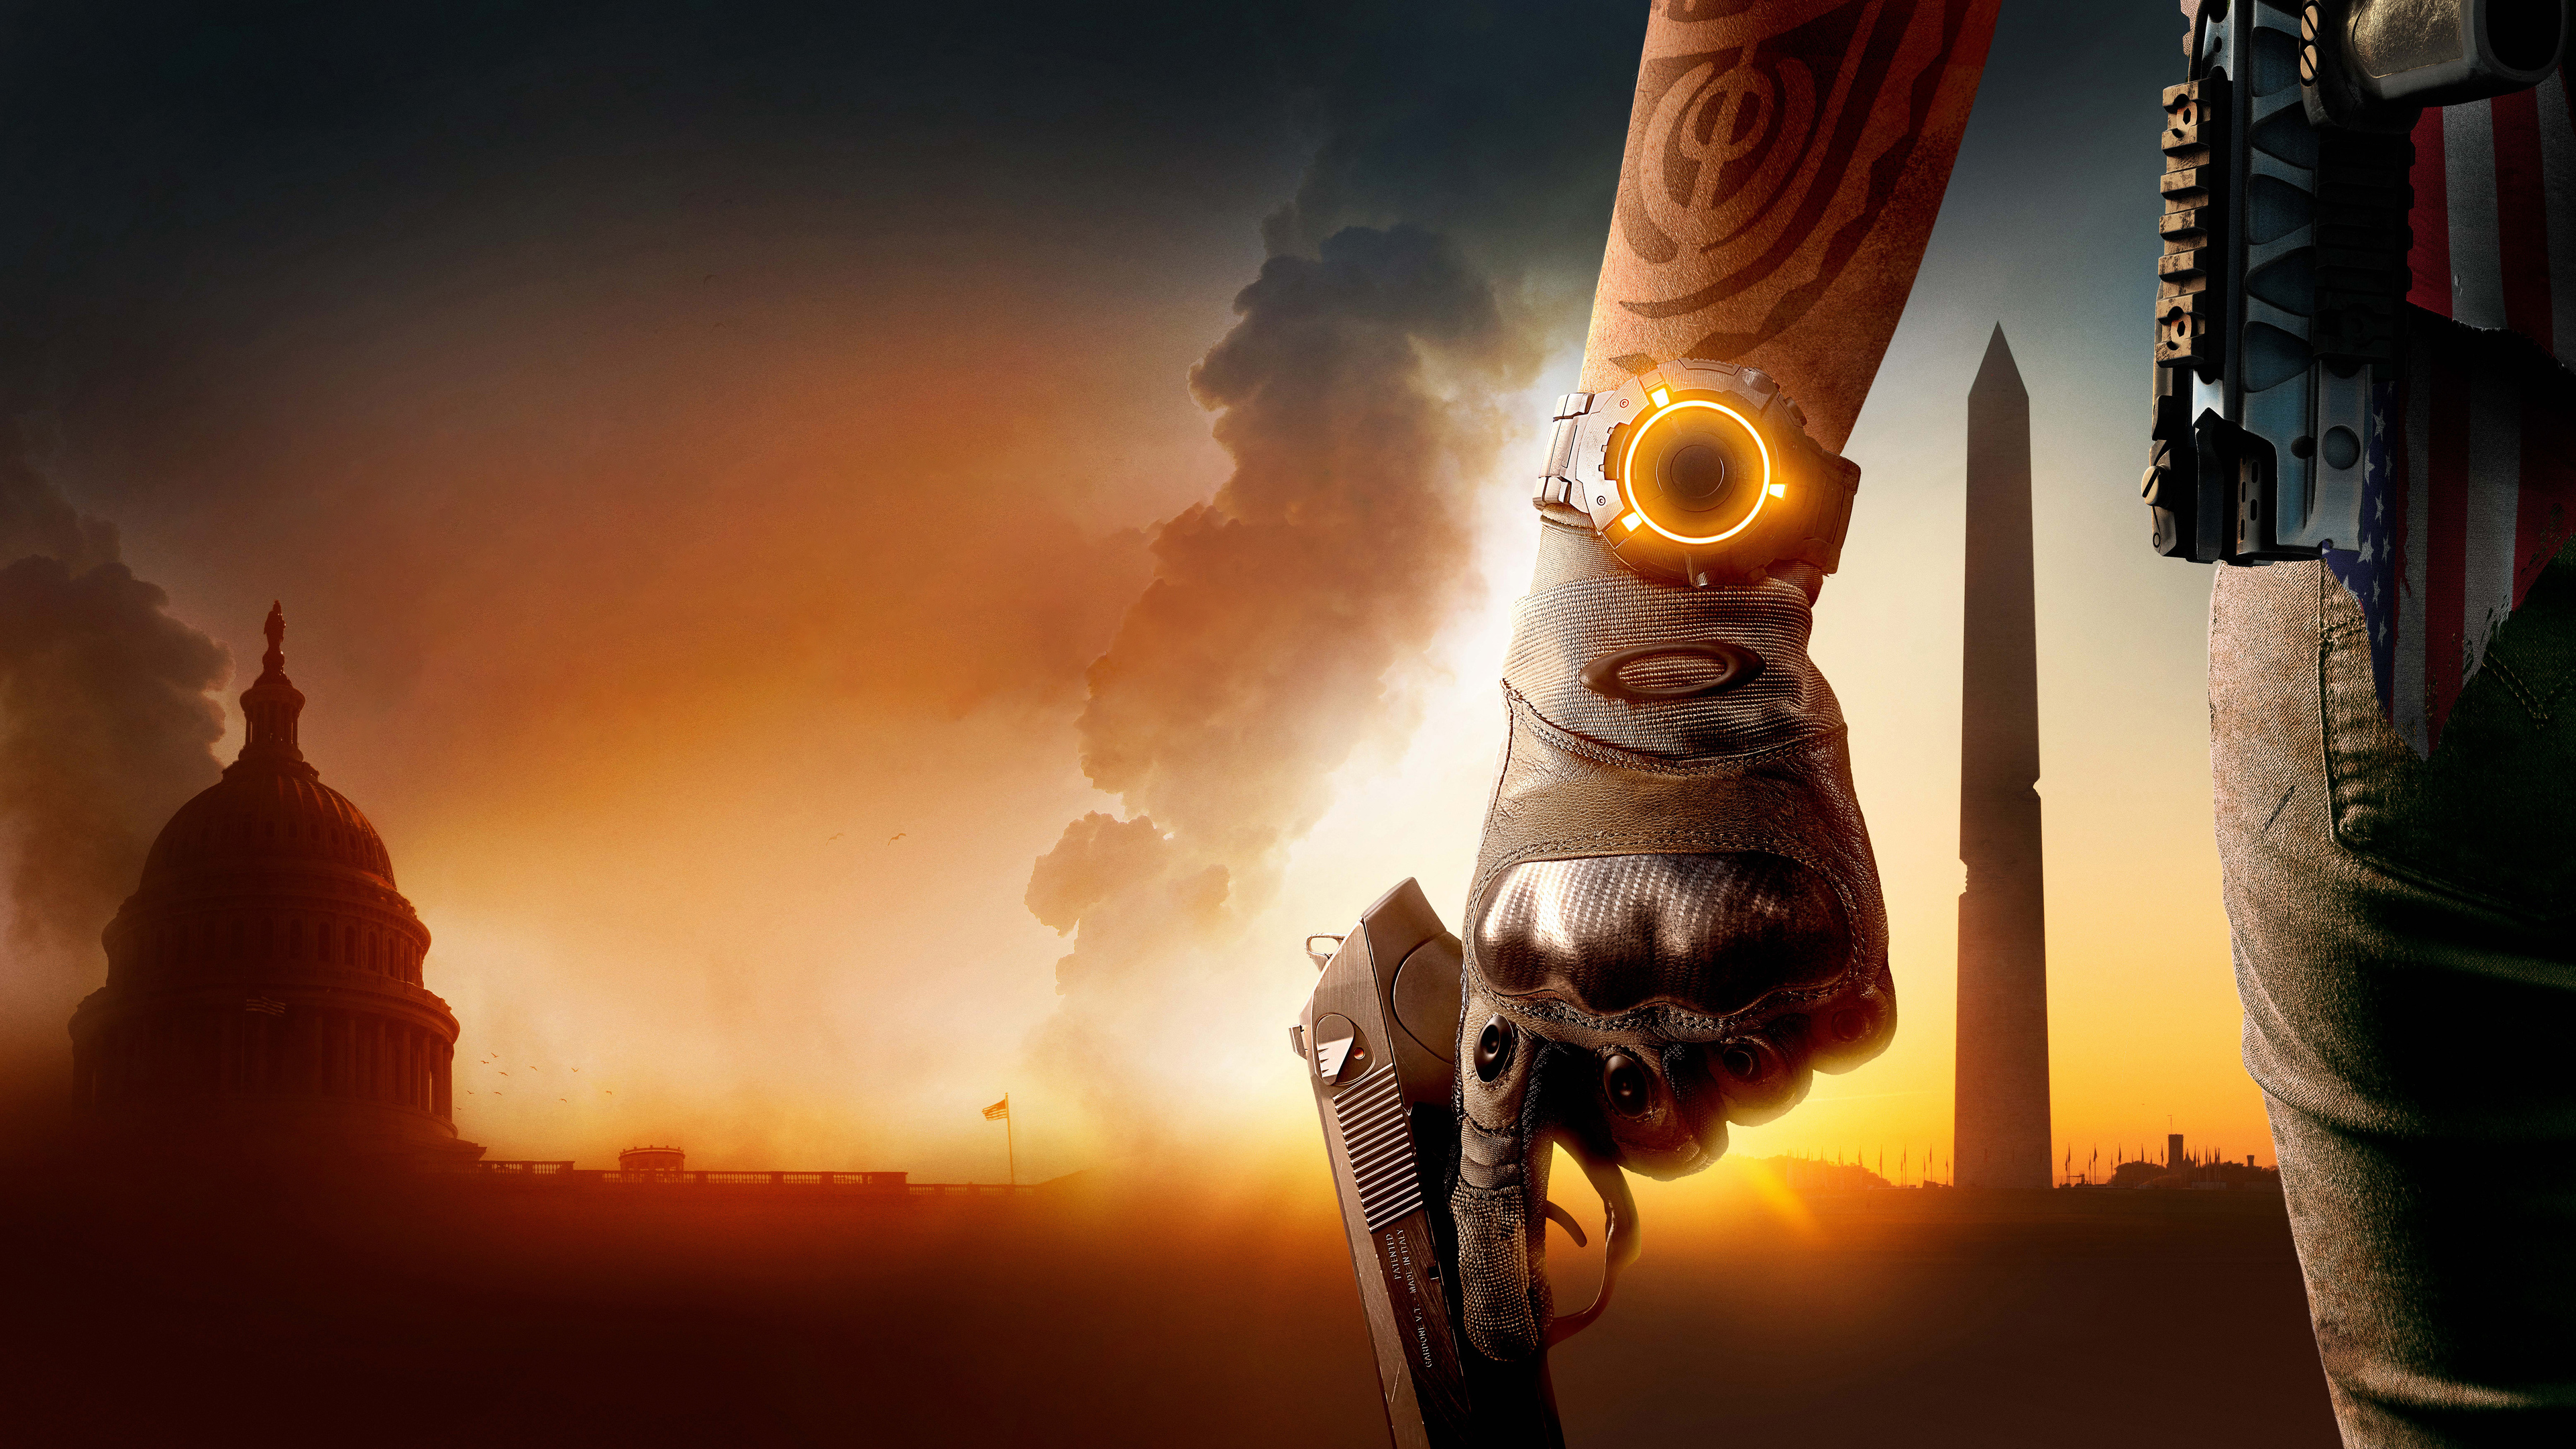 Wallpaper 4k 2019 Tom Clancys The Division 2 4k 2019 Games